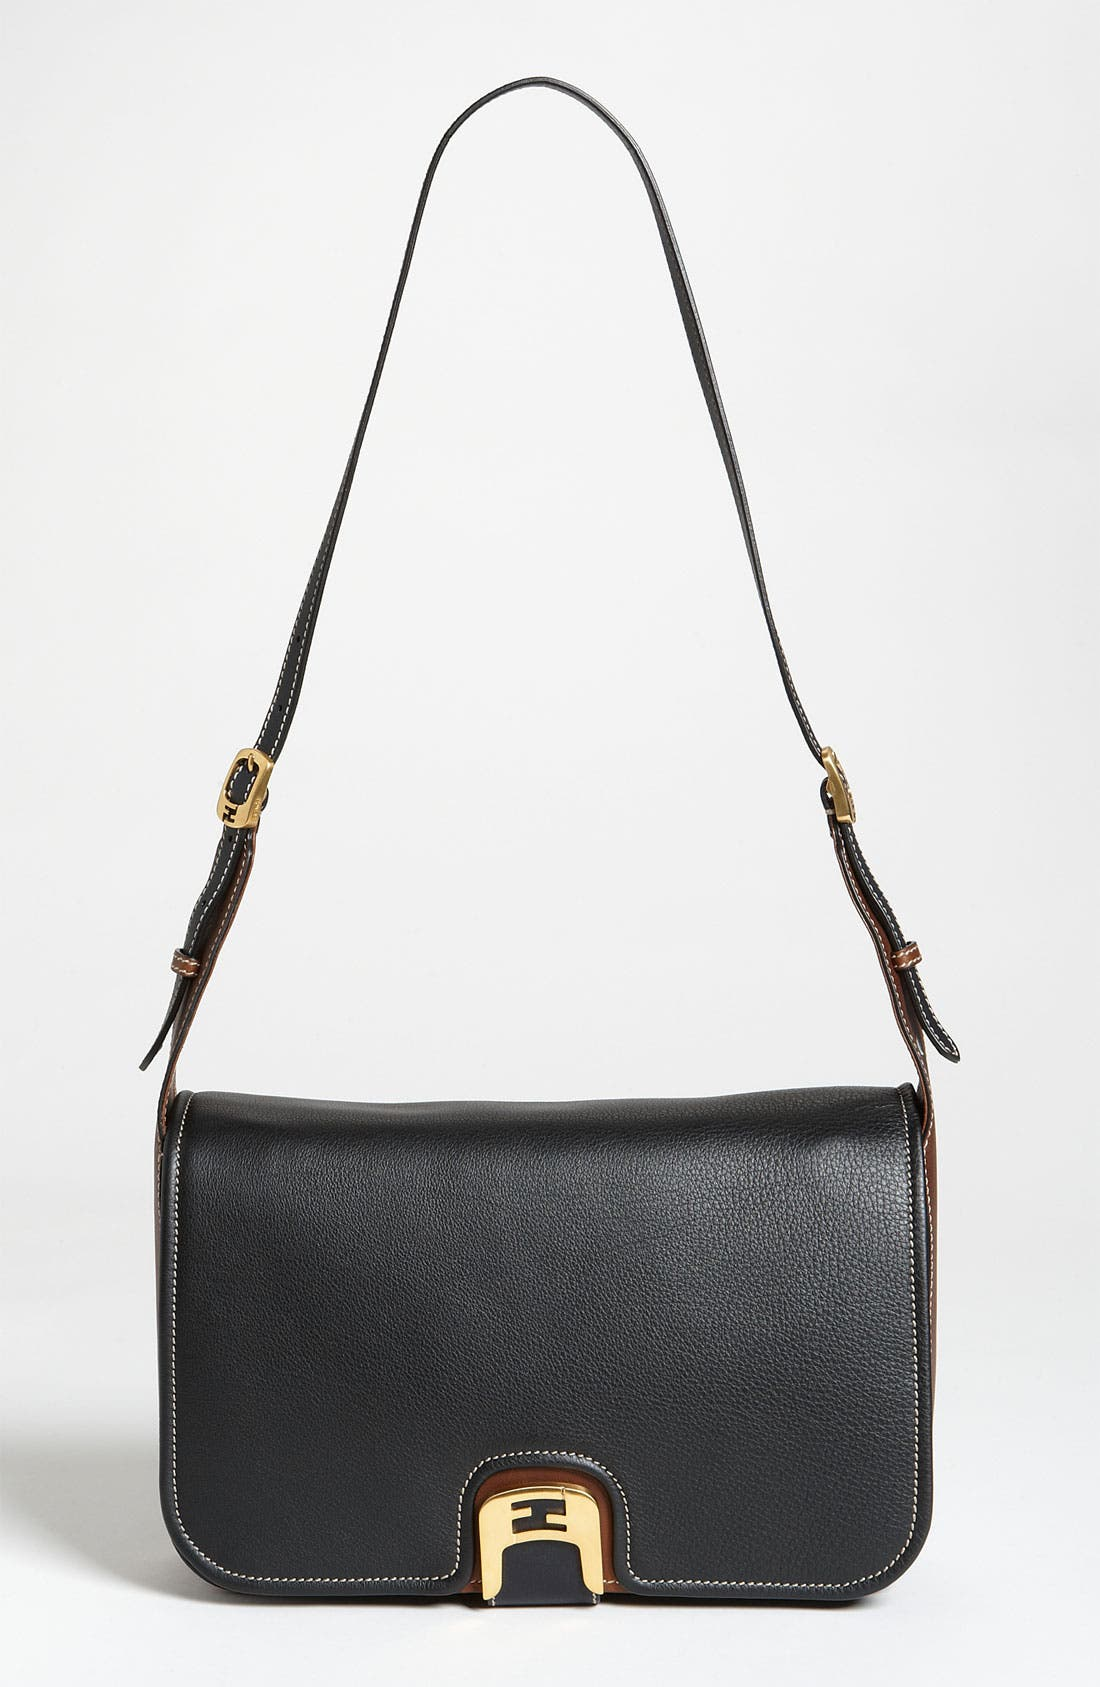 'Chameleon' Leather Shoulder Bag,                         Main,                         color, 001